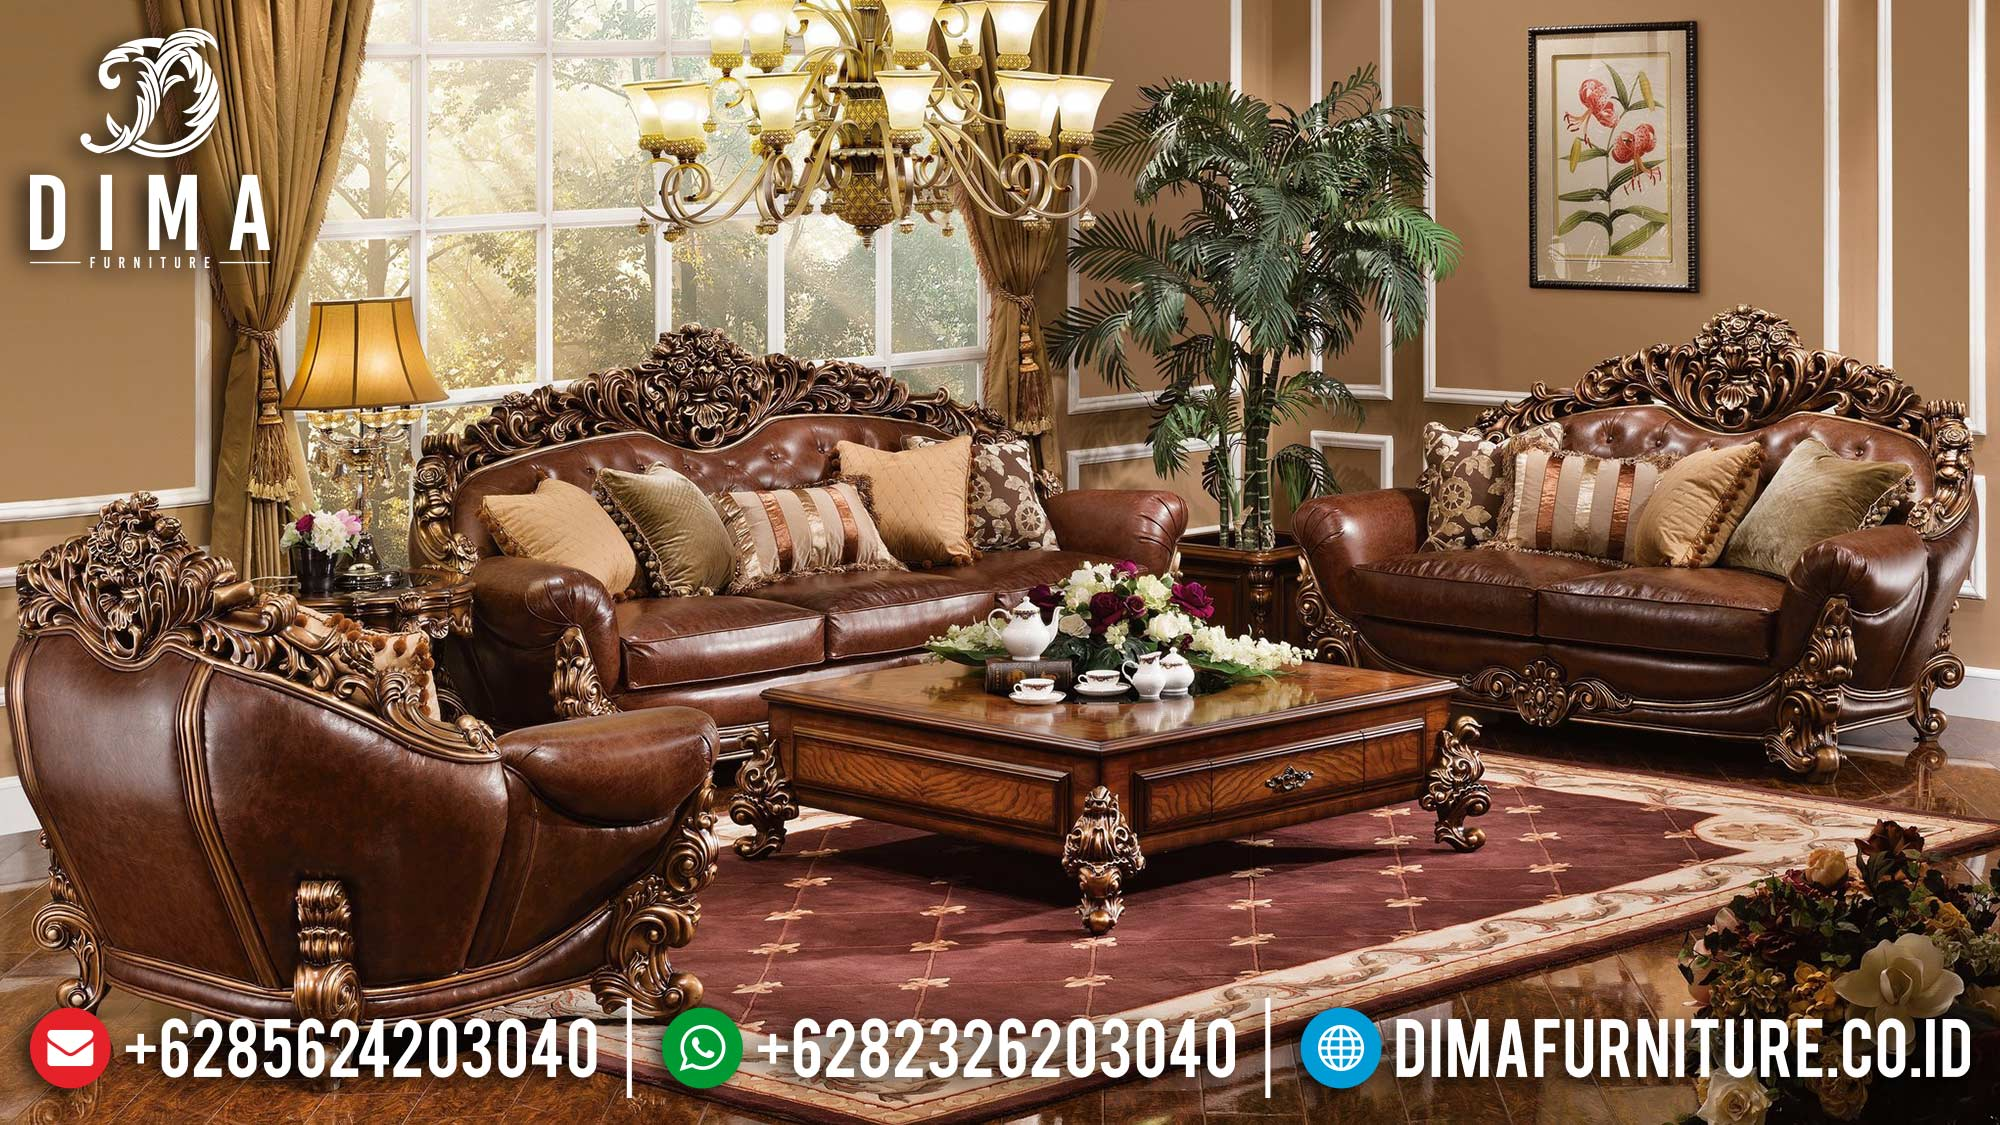 Sofa Tamu Jepara Kayu Jati Luxury Natural Classic Furniture Jepara ST-1314